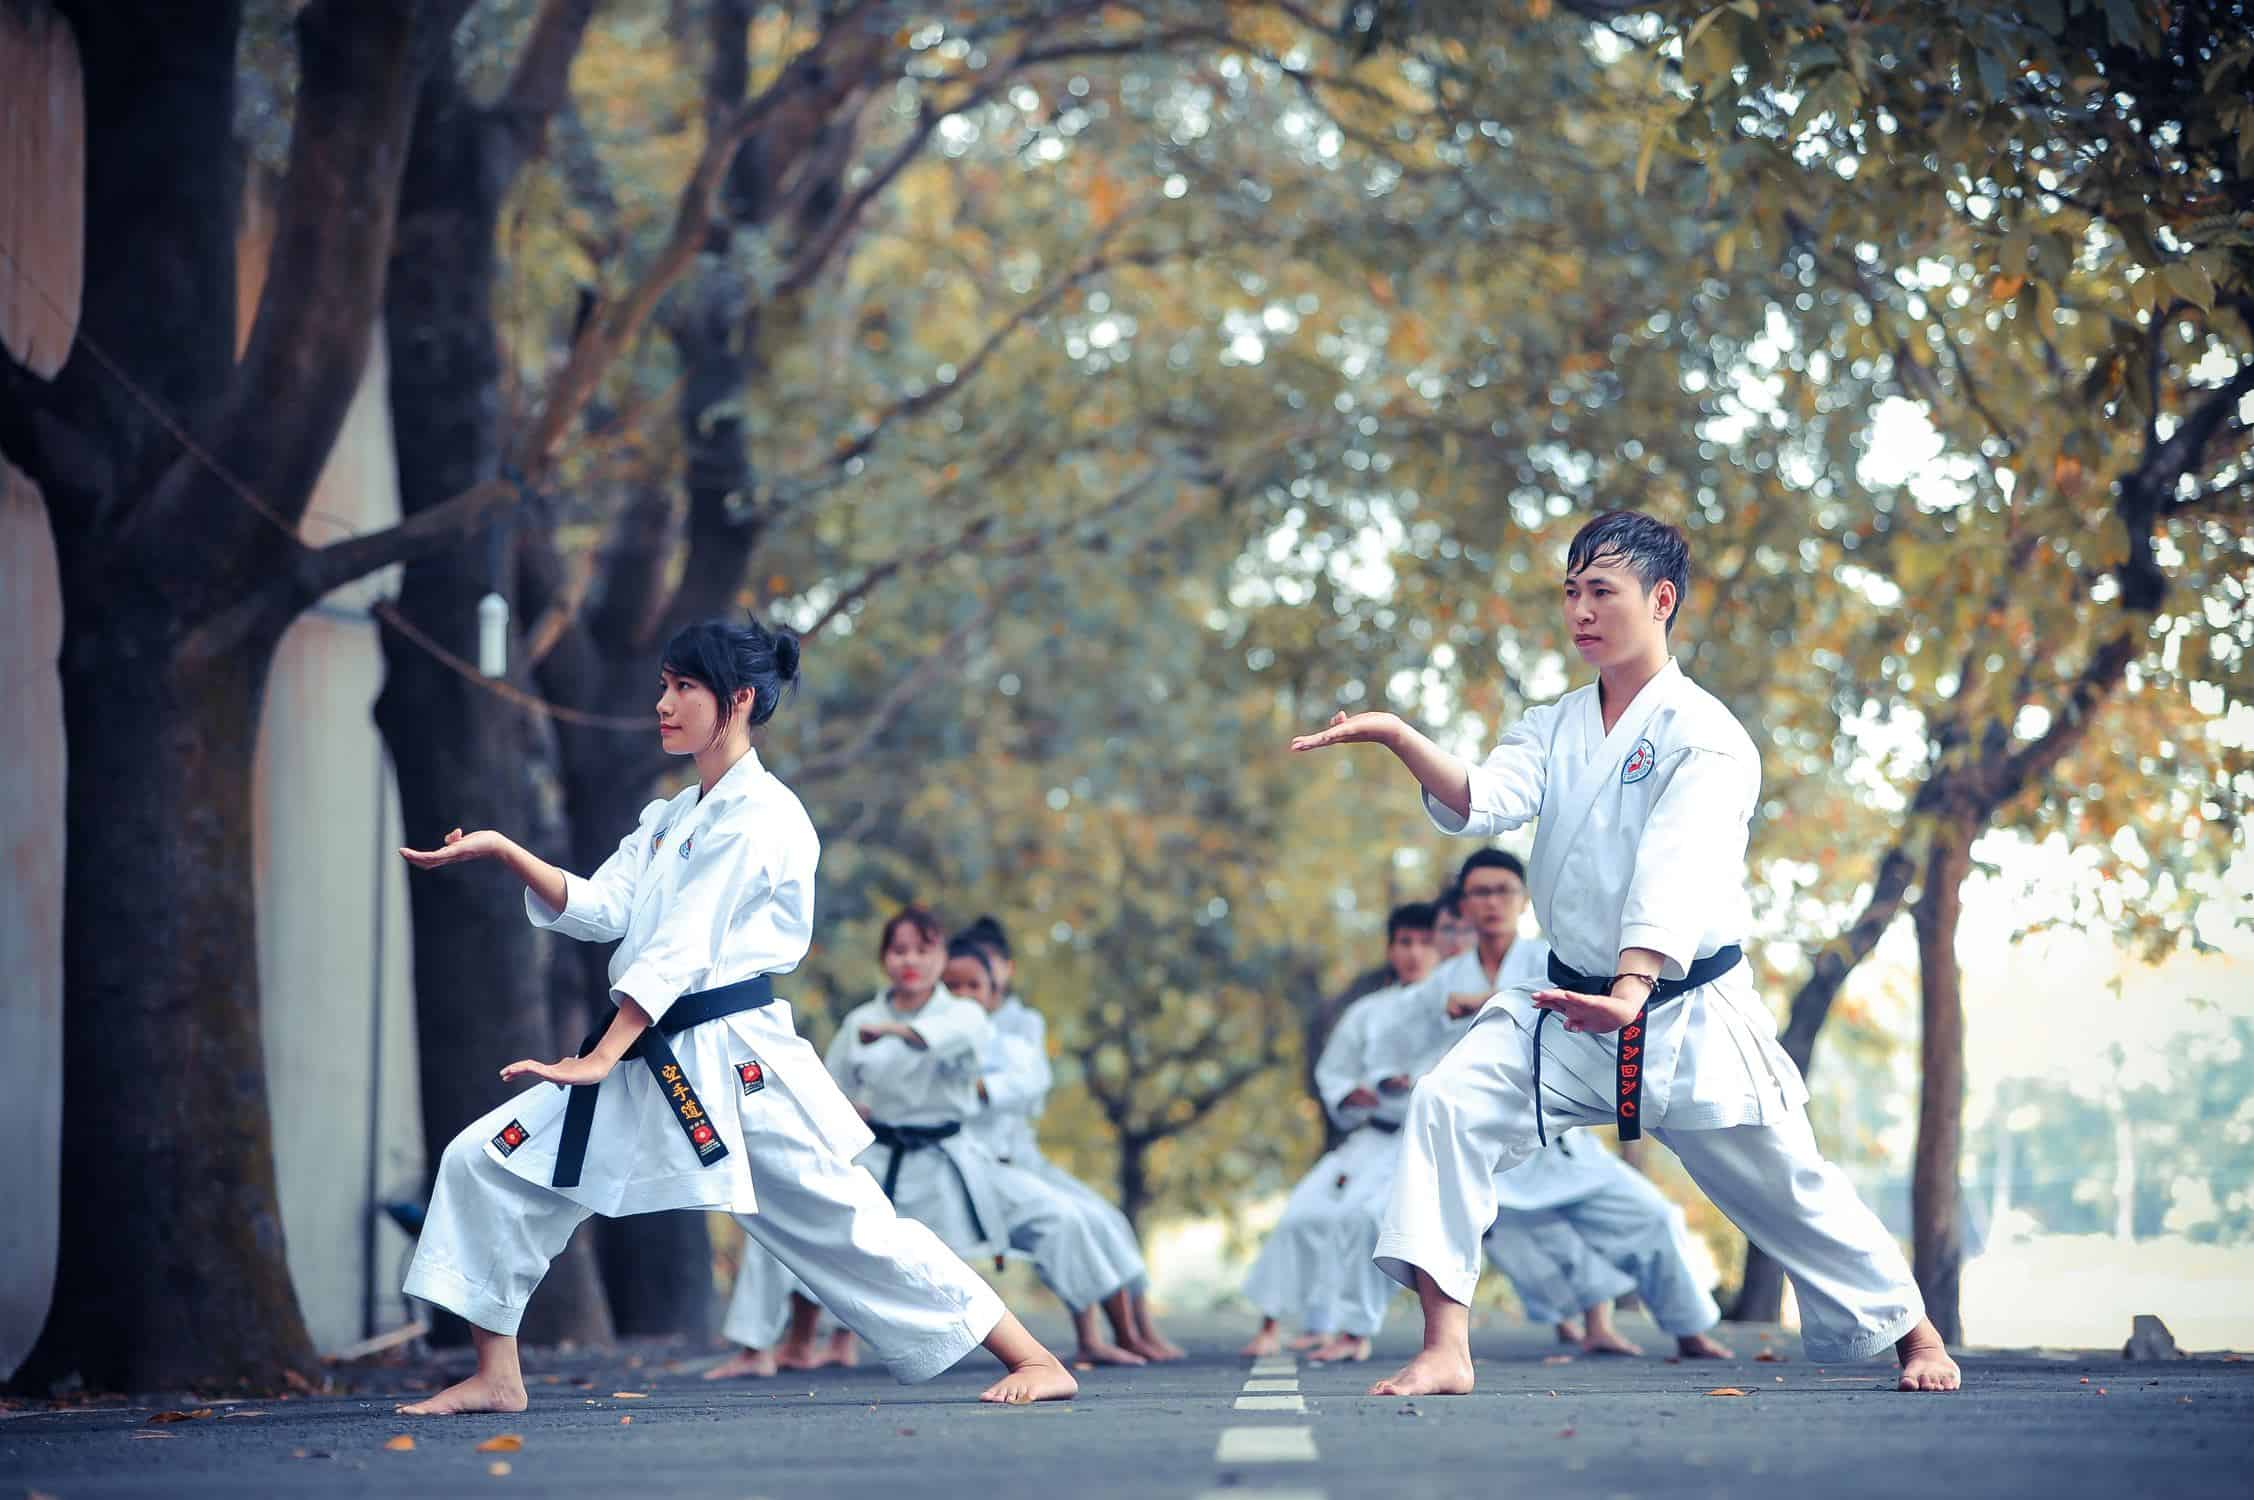 Krav Maga Vs Karate Vs Aikido Which Is Best The Martial Way